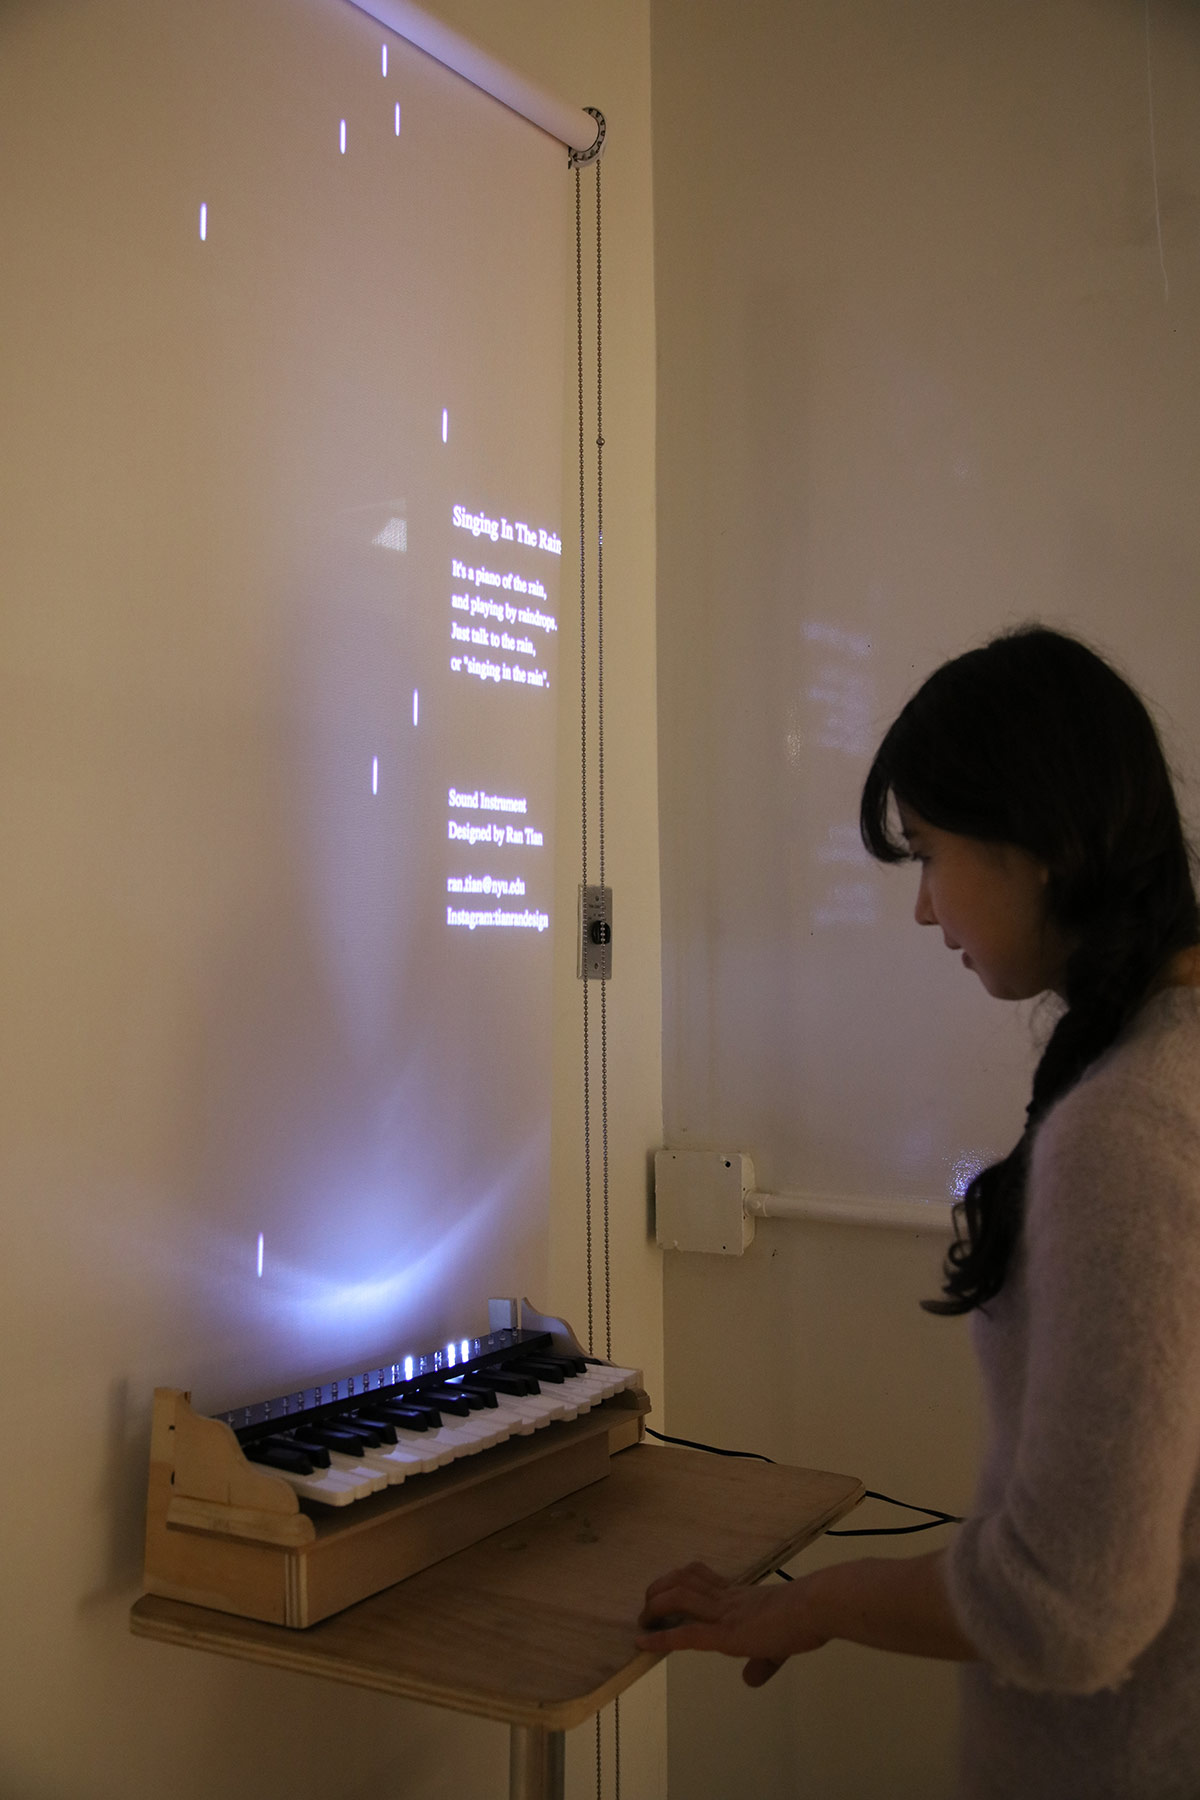 a woman standing in front of a small keyboard that is triggering lights on the projection behind it